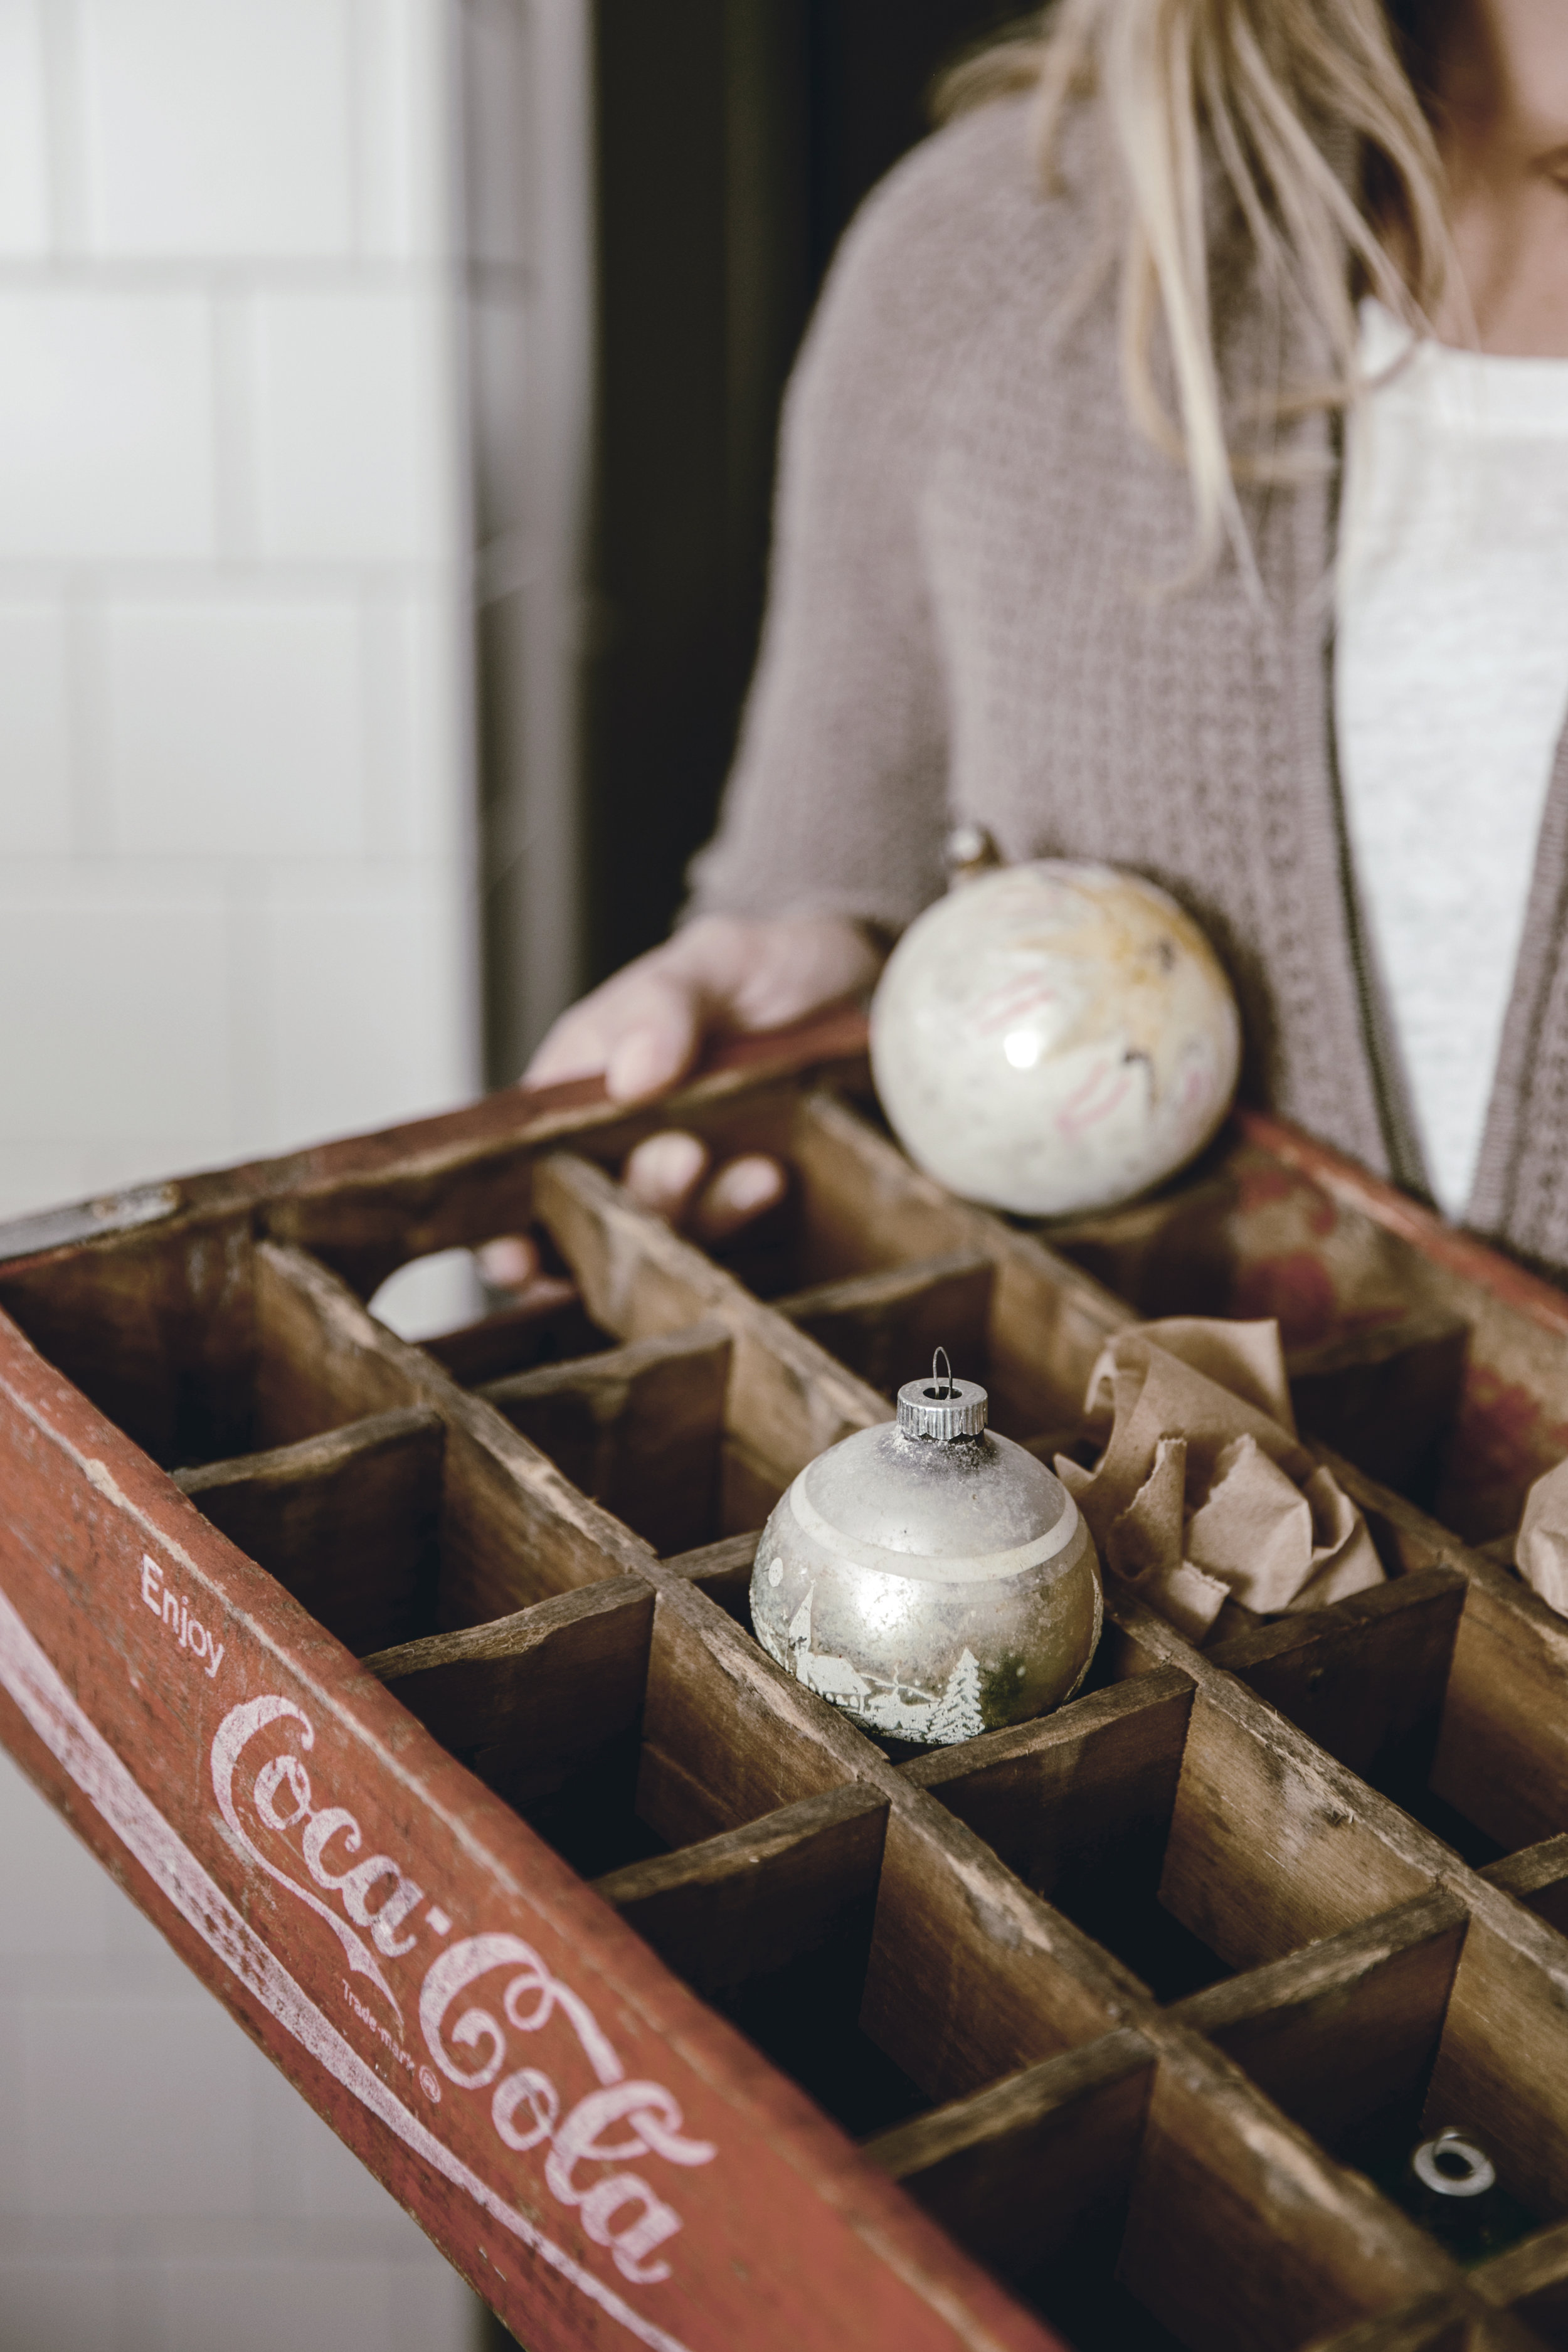 storing holiday ornaments / heirloomed